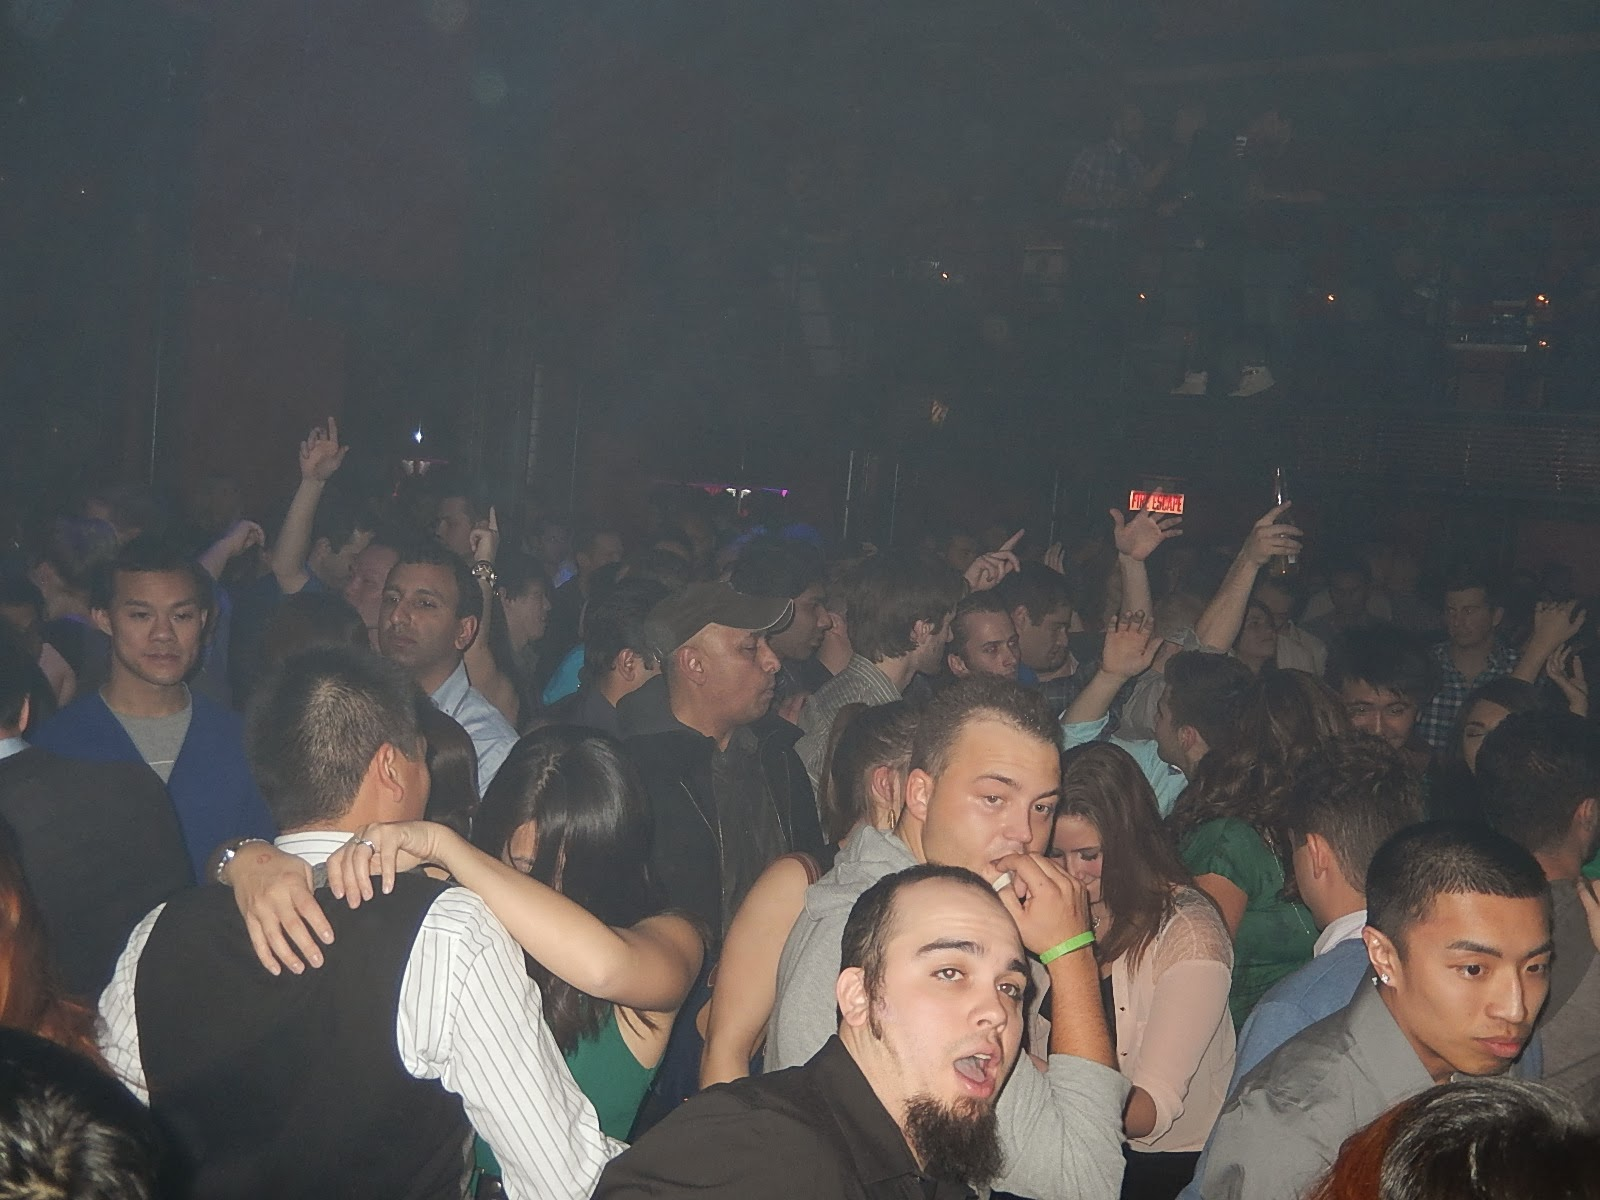 enormous group getting pleasure in the club